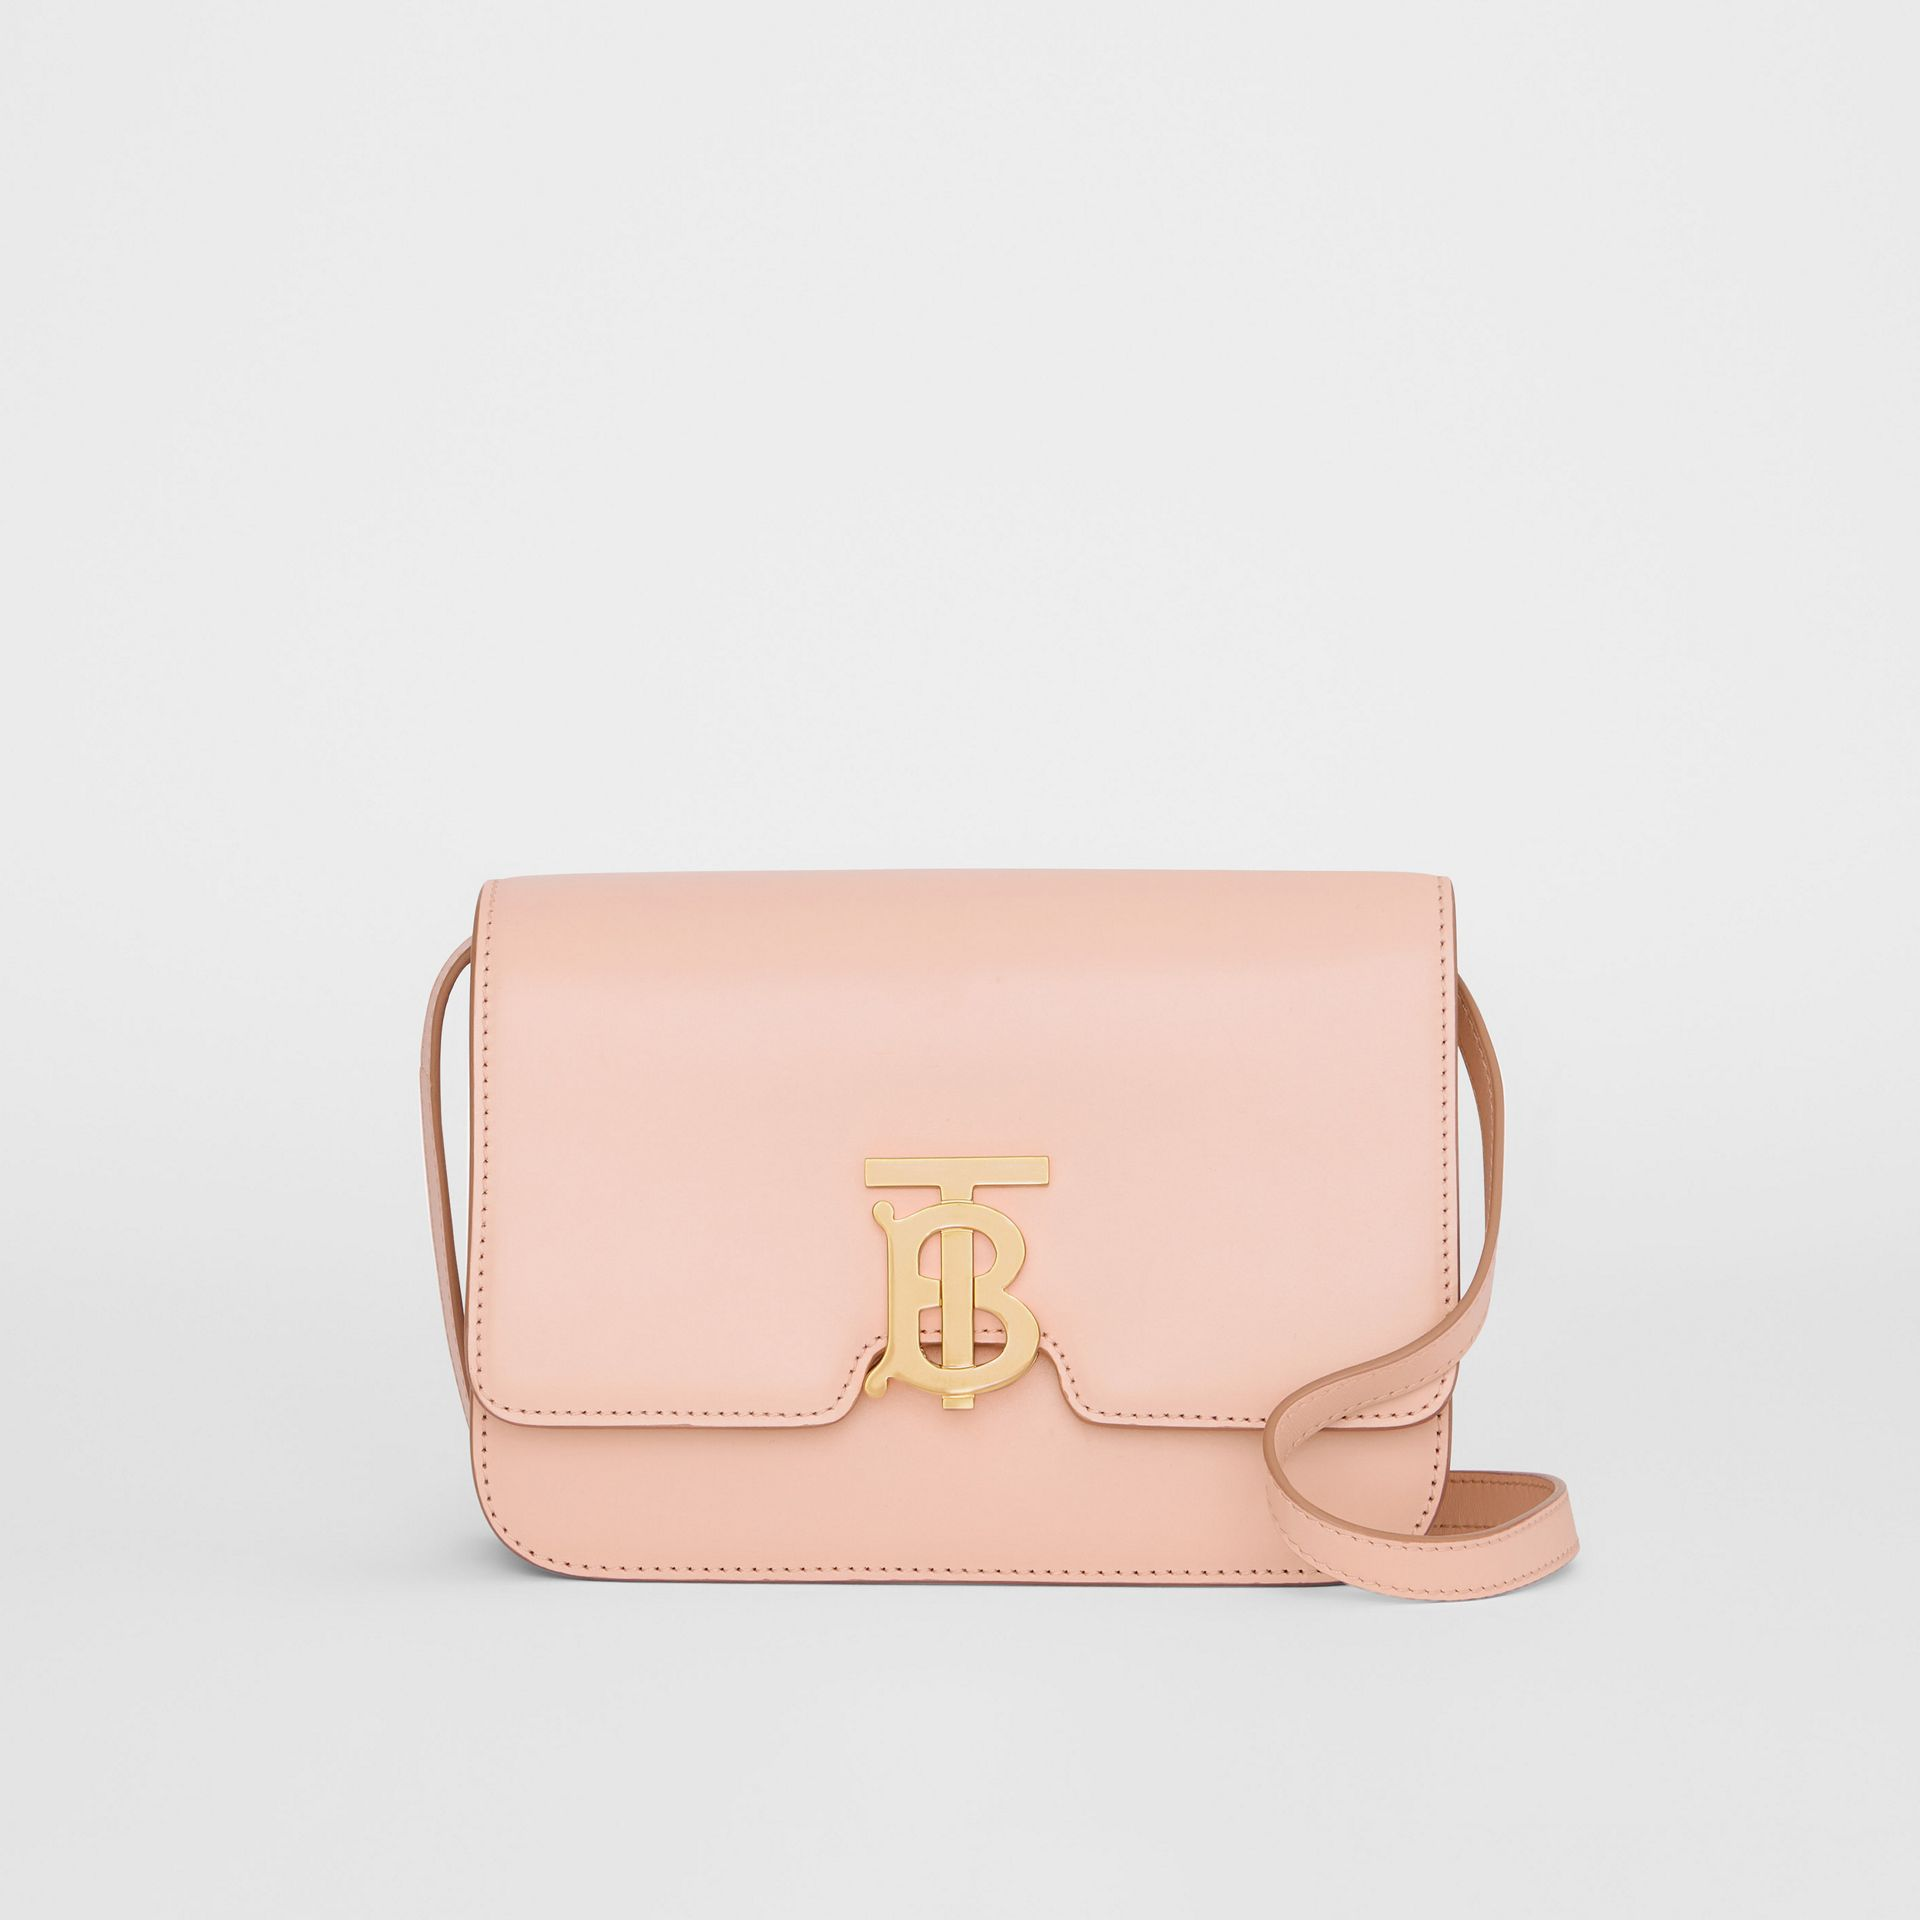 Petit sac TB en cuir (Beige Rose) - Femme | Burberry - photo de la galerie 0